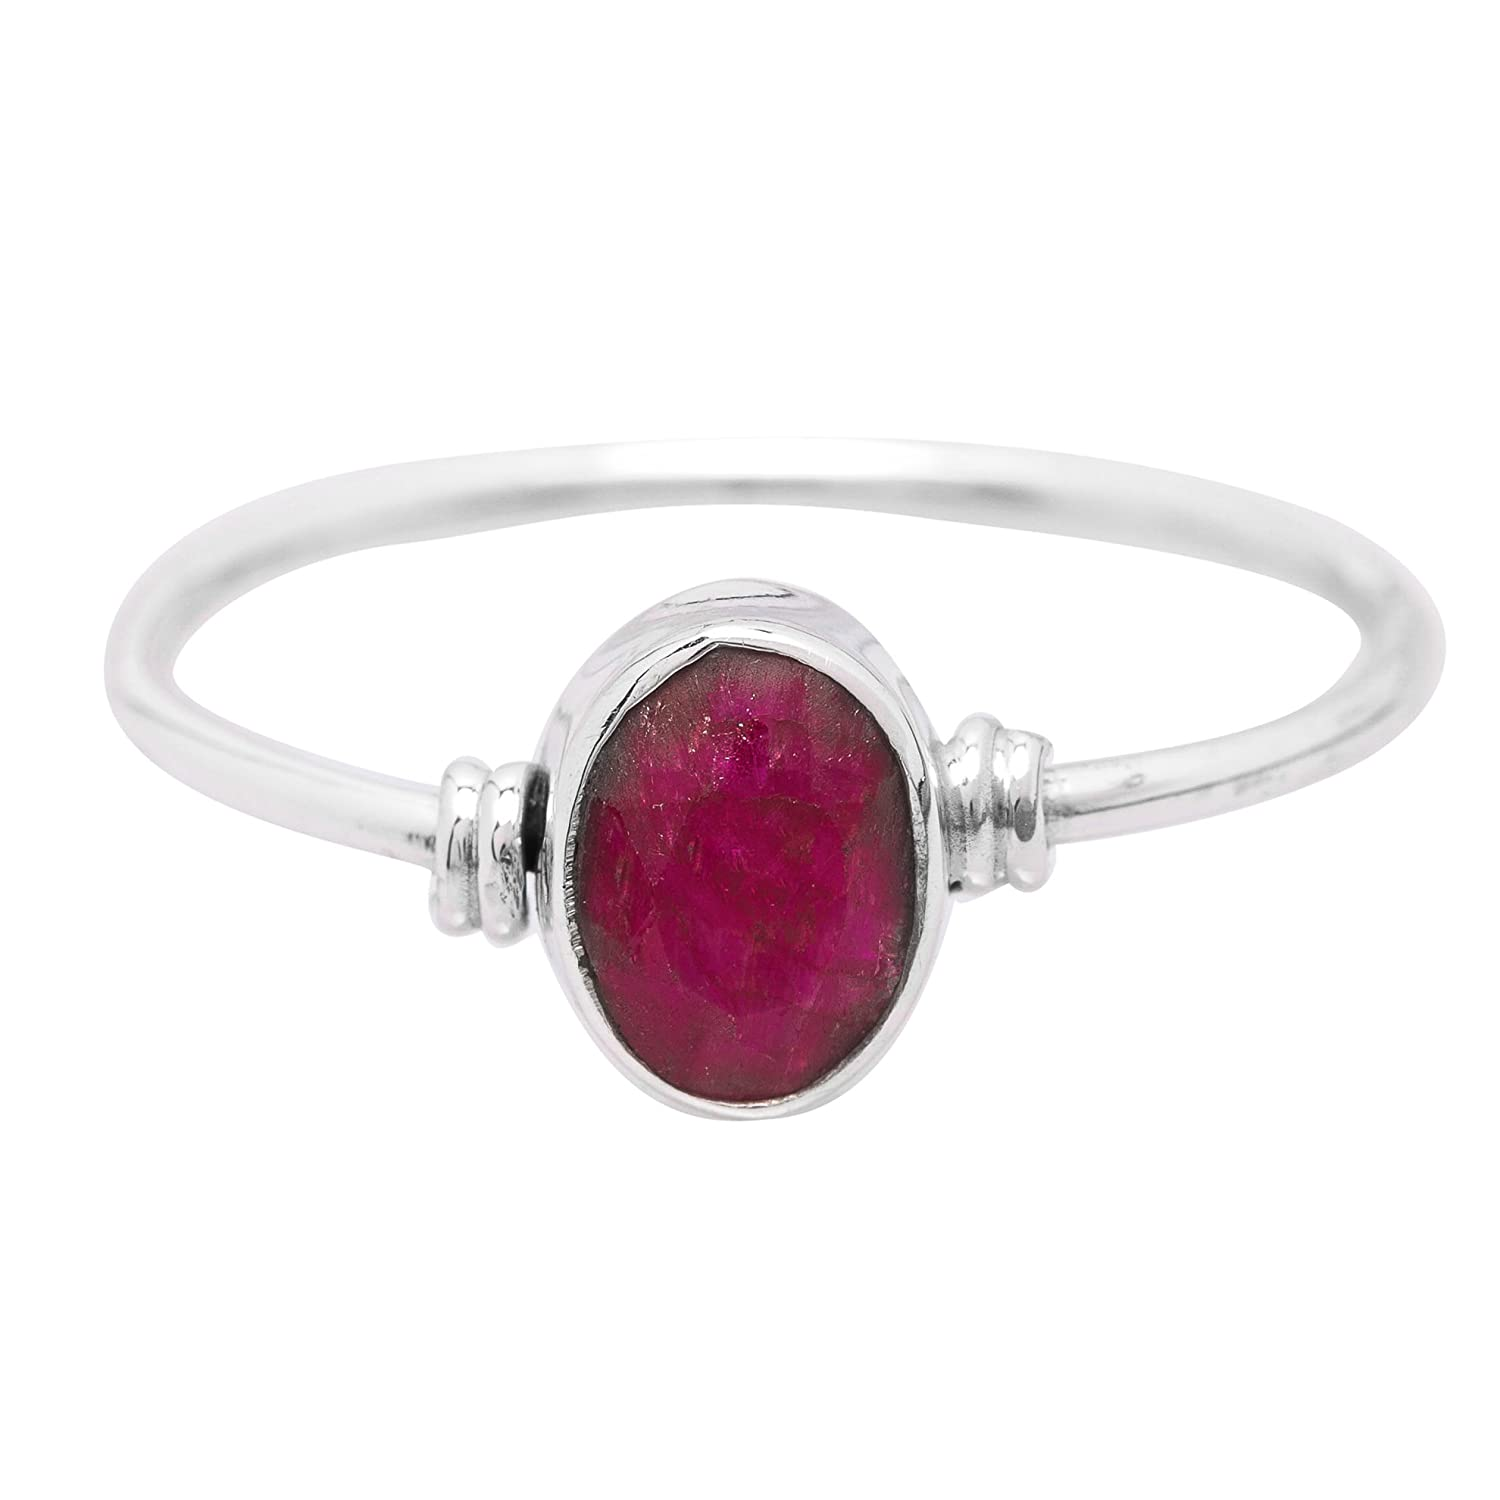 Koral Jewelry Created Ruby Oval Stone Delicate Ring 925 Sterling Silver Vintage Tribal Gipsy Boho Look